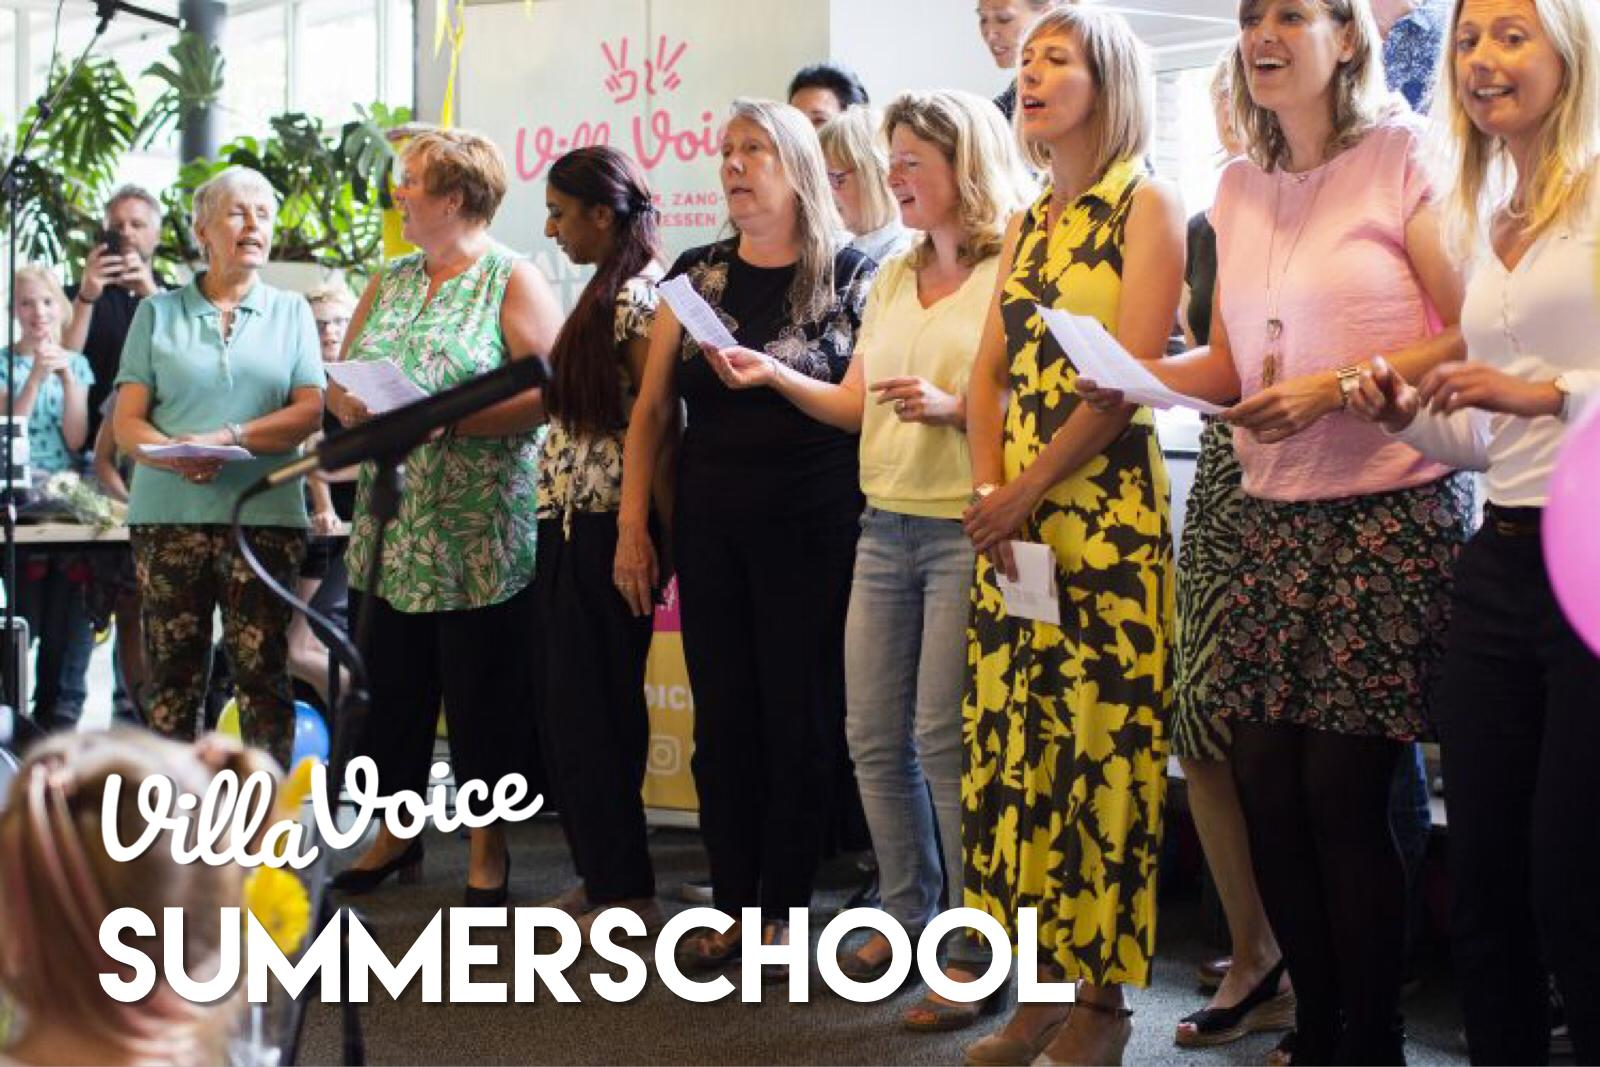 Summerschool van Villa Voice